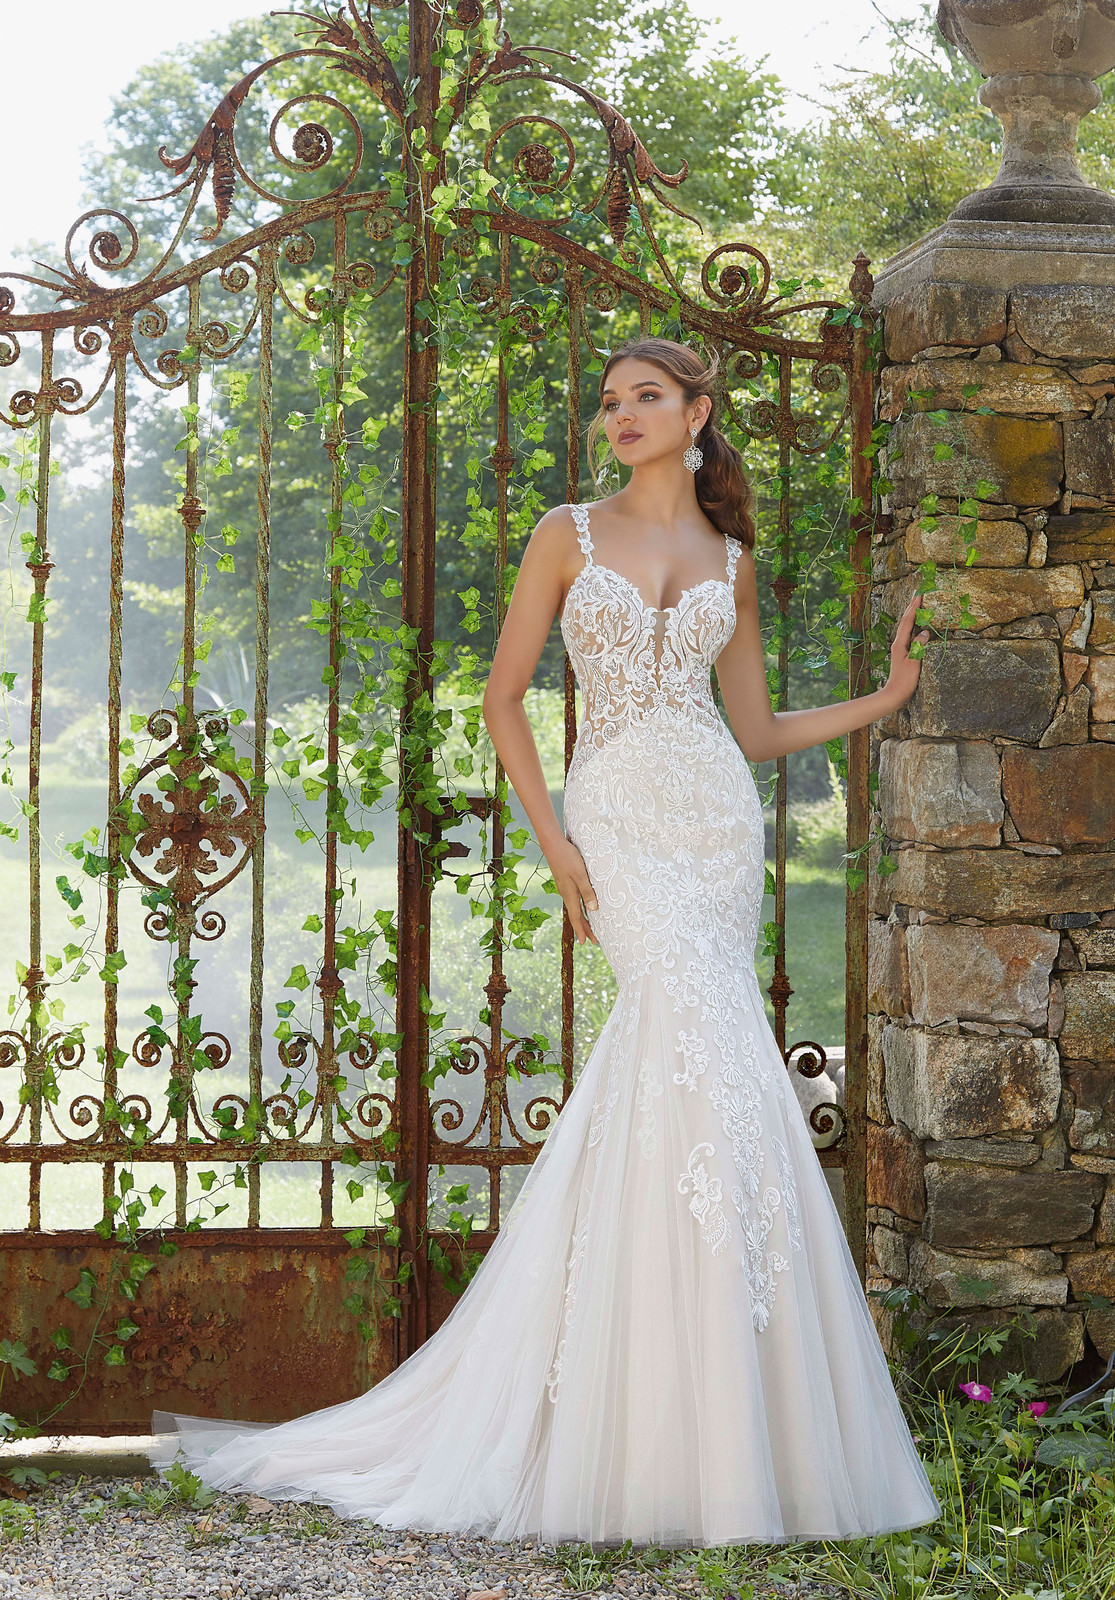 Amour Bridal Bridal Boutique In Cedar Park Tx